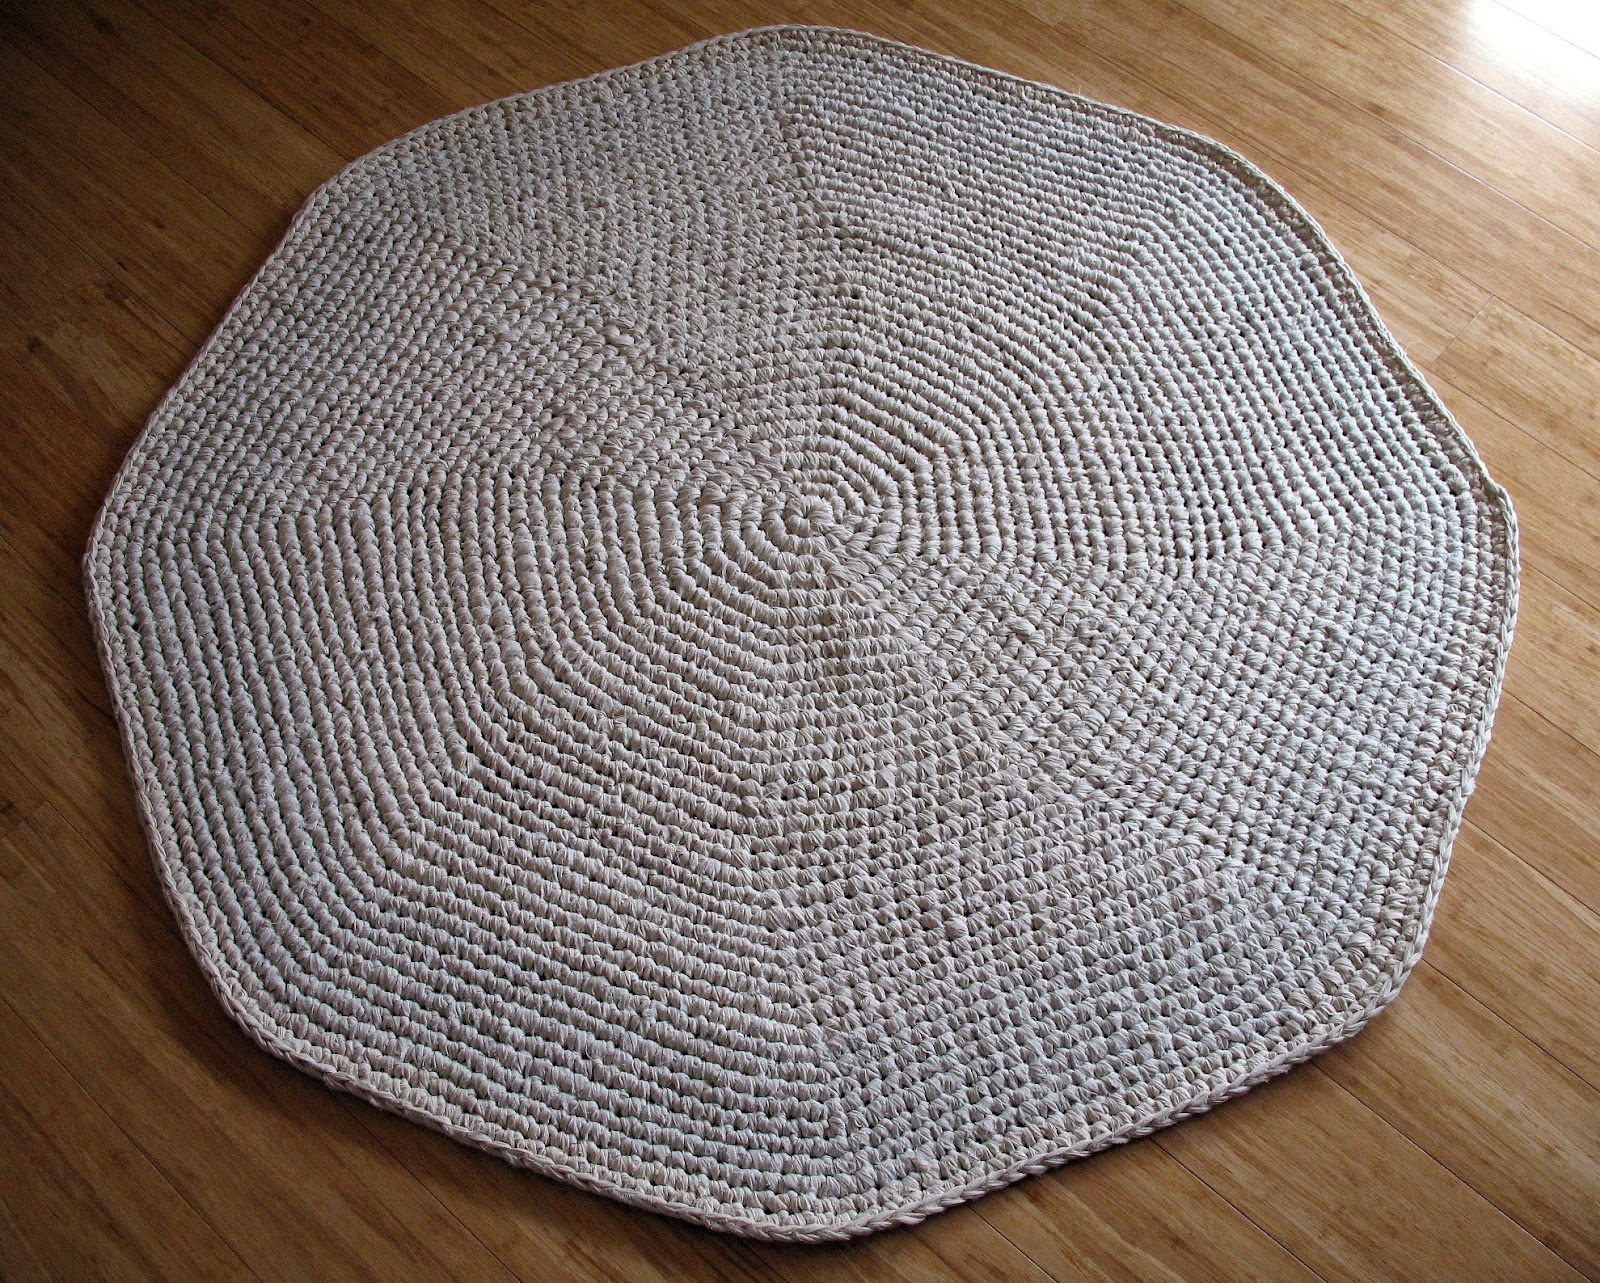 Crocheting A Rug : and also that it looks so natural and well...handmade :)